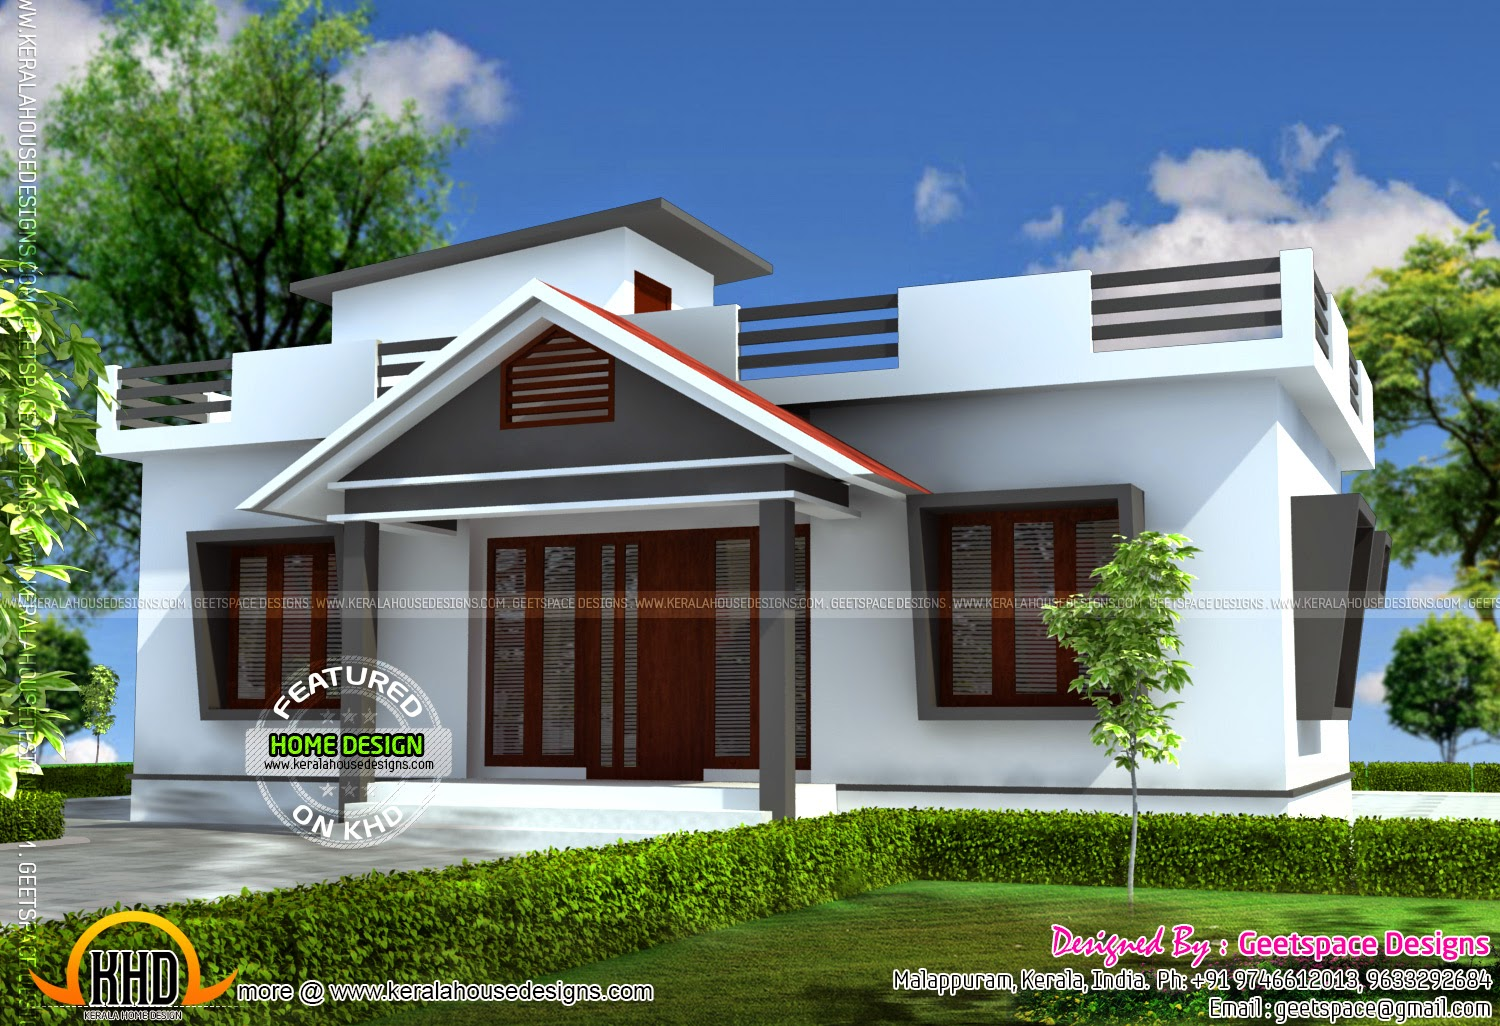 Small house in 903 square feet kerala home design and floor plans Home design and budget